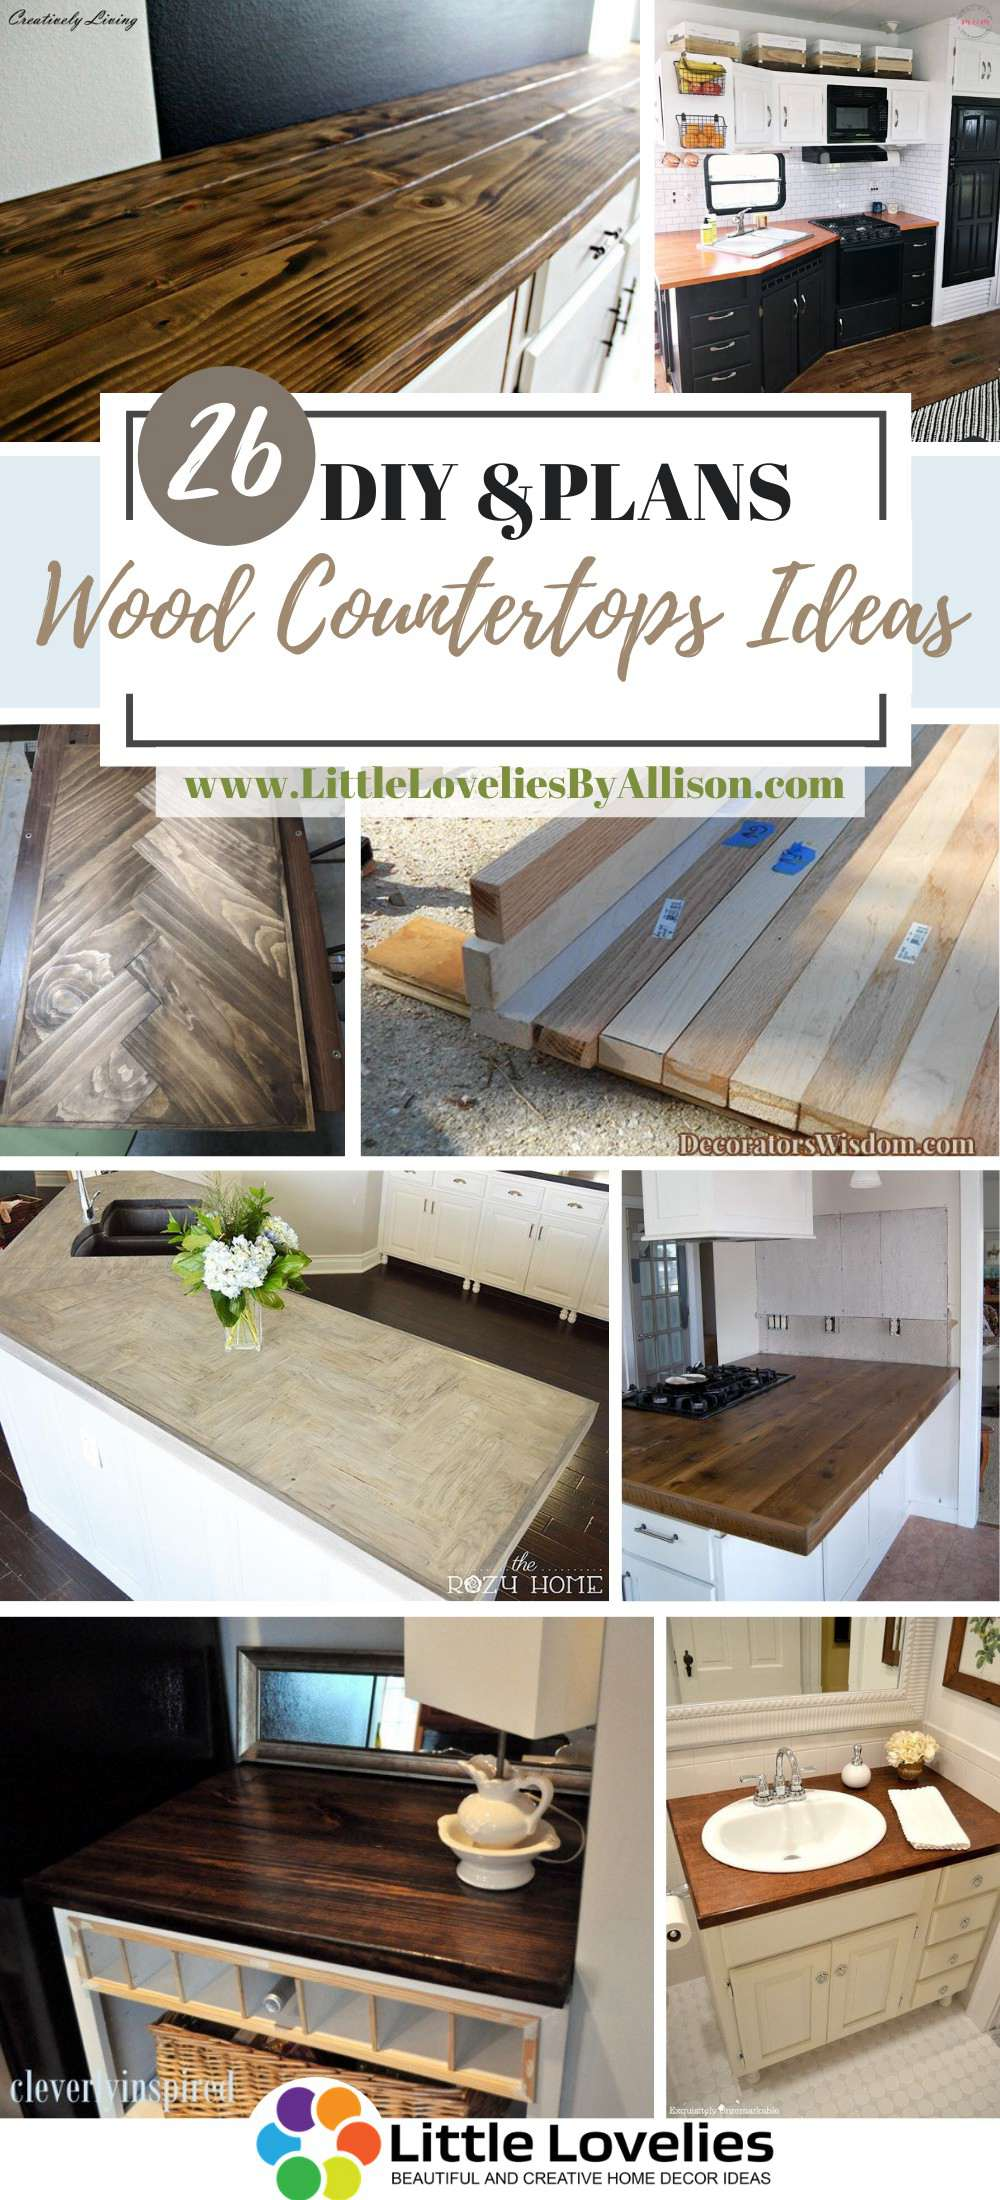 How-To-Make-A-DIY-Wood-Countertop